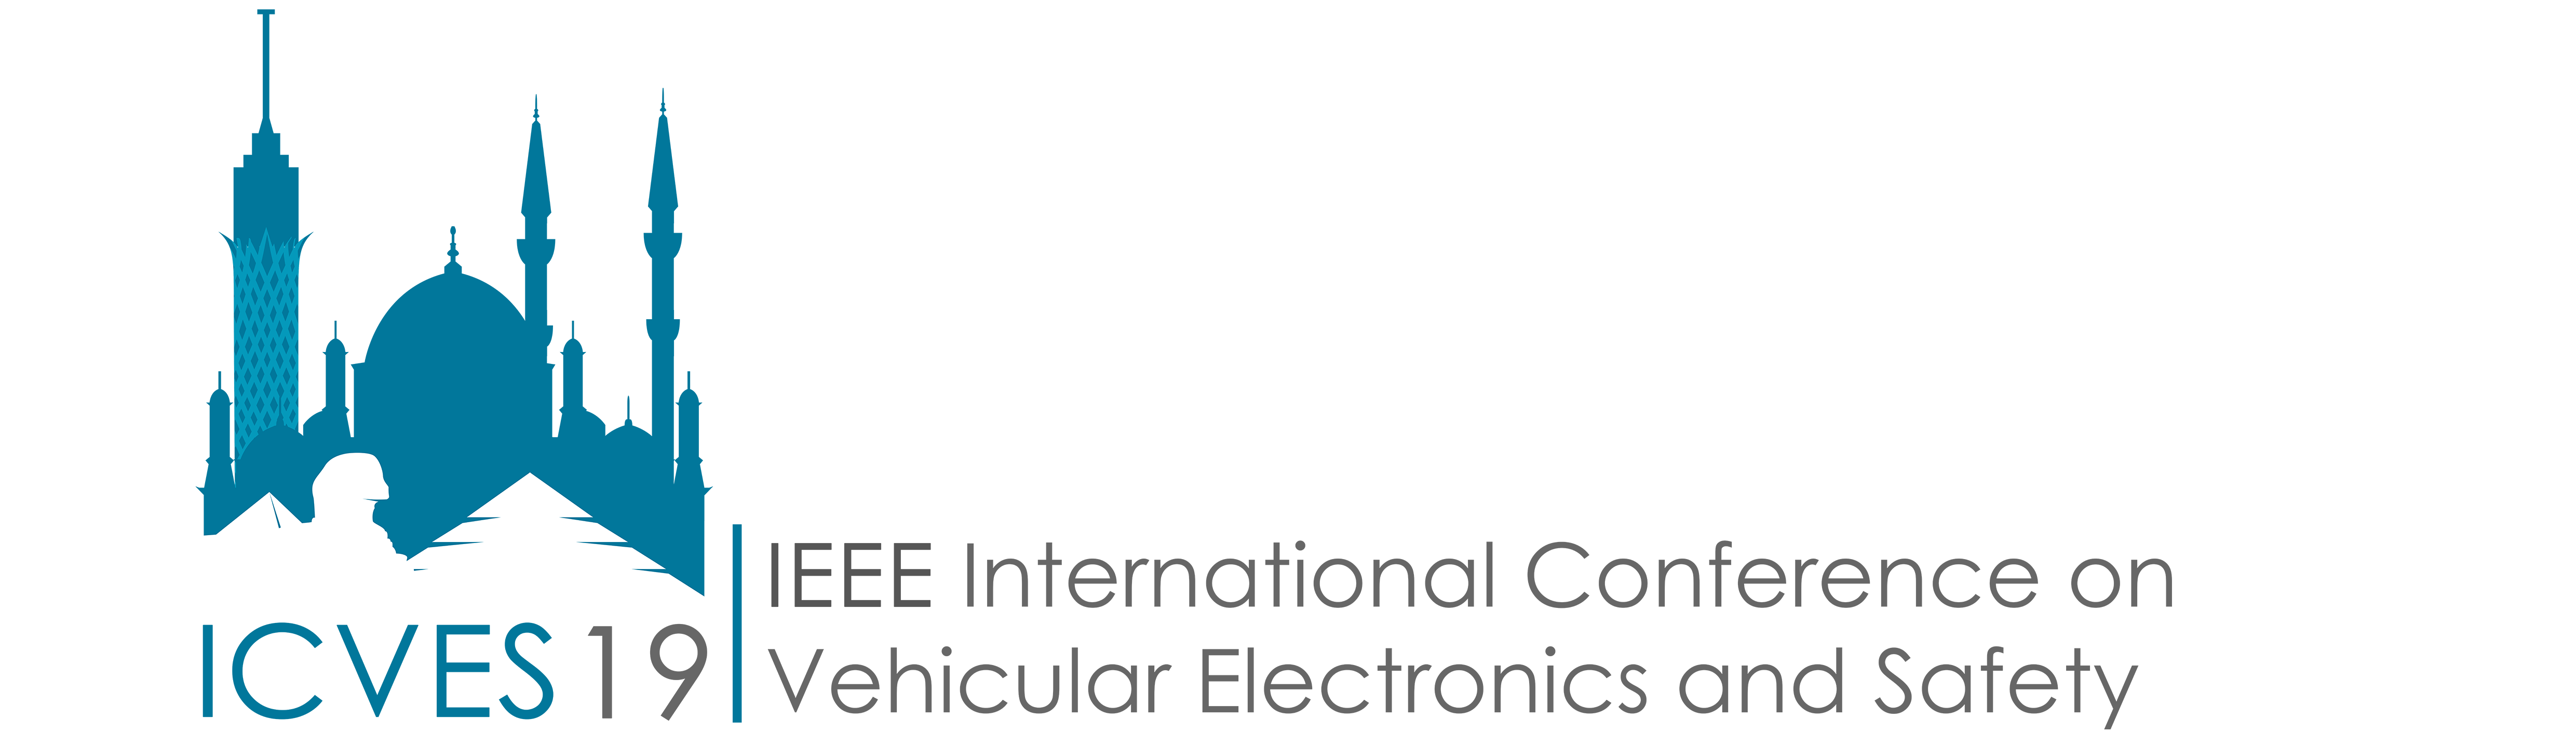 IEEE ICVES 2019